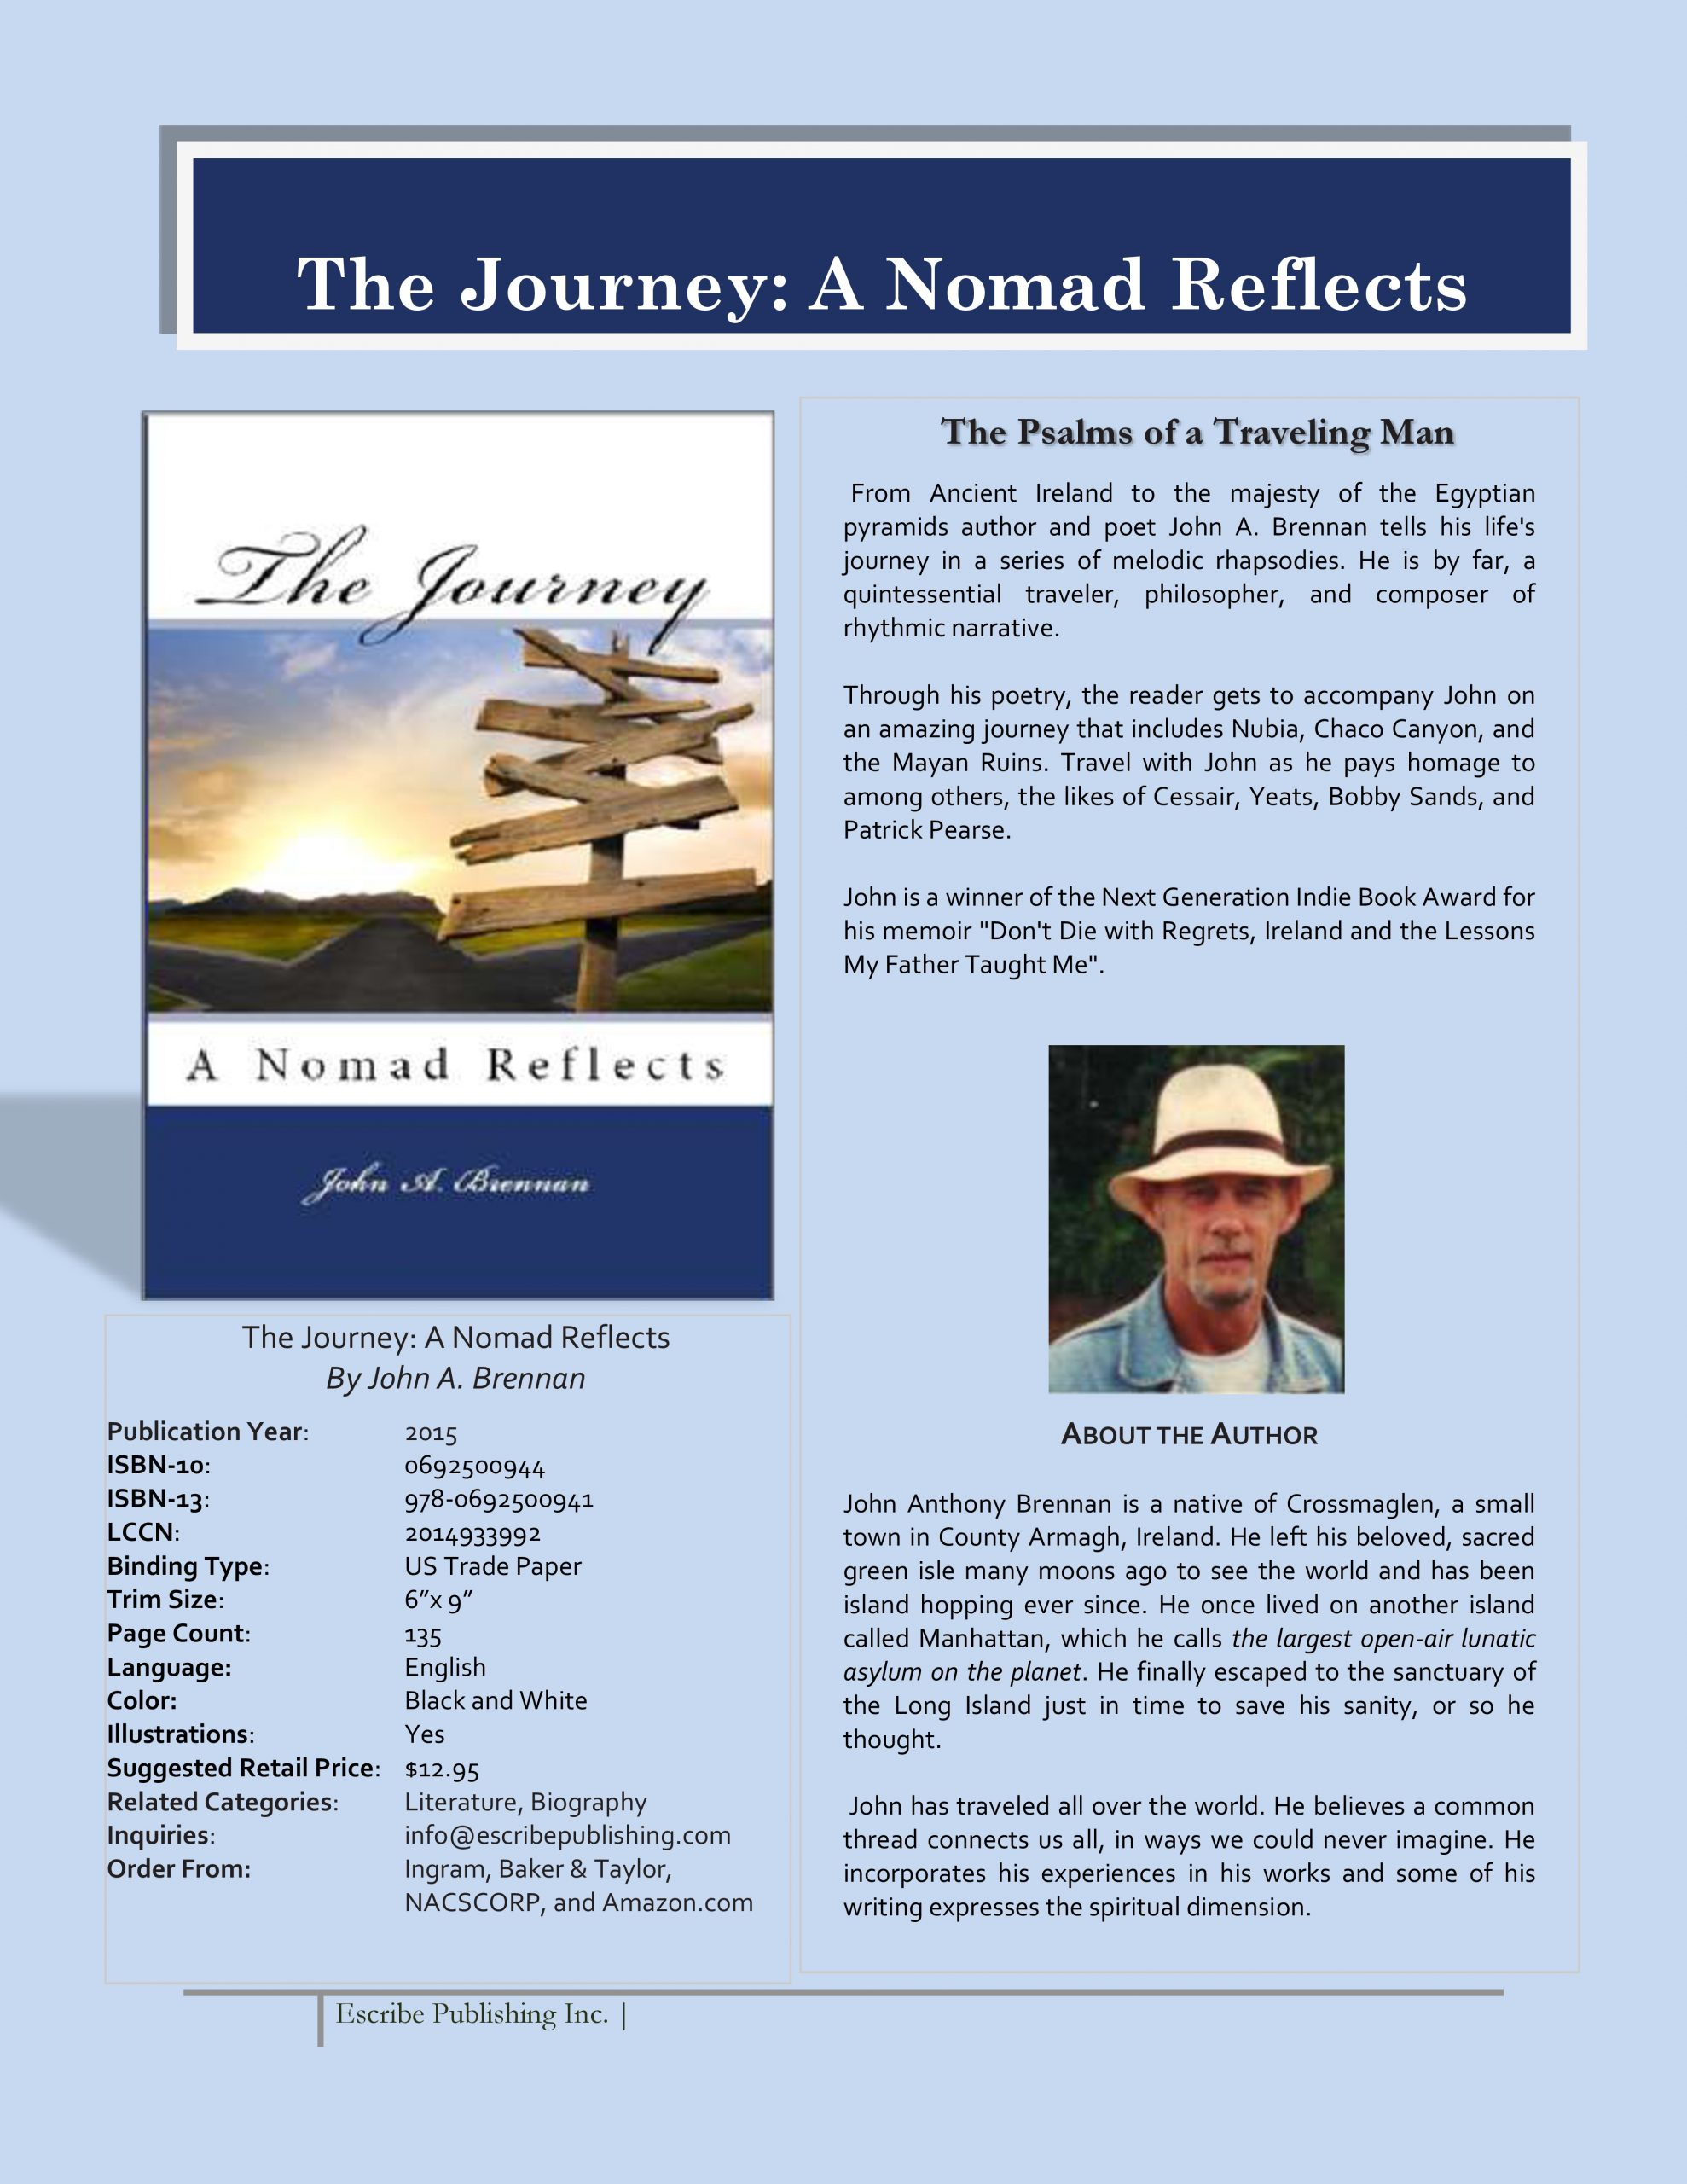 THE JOURNEY SELL SHEET